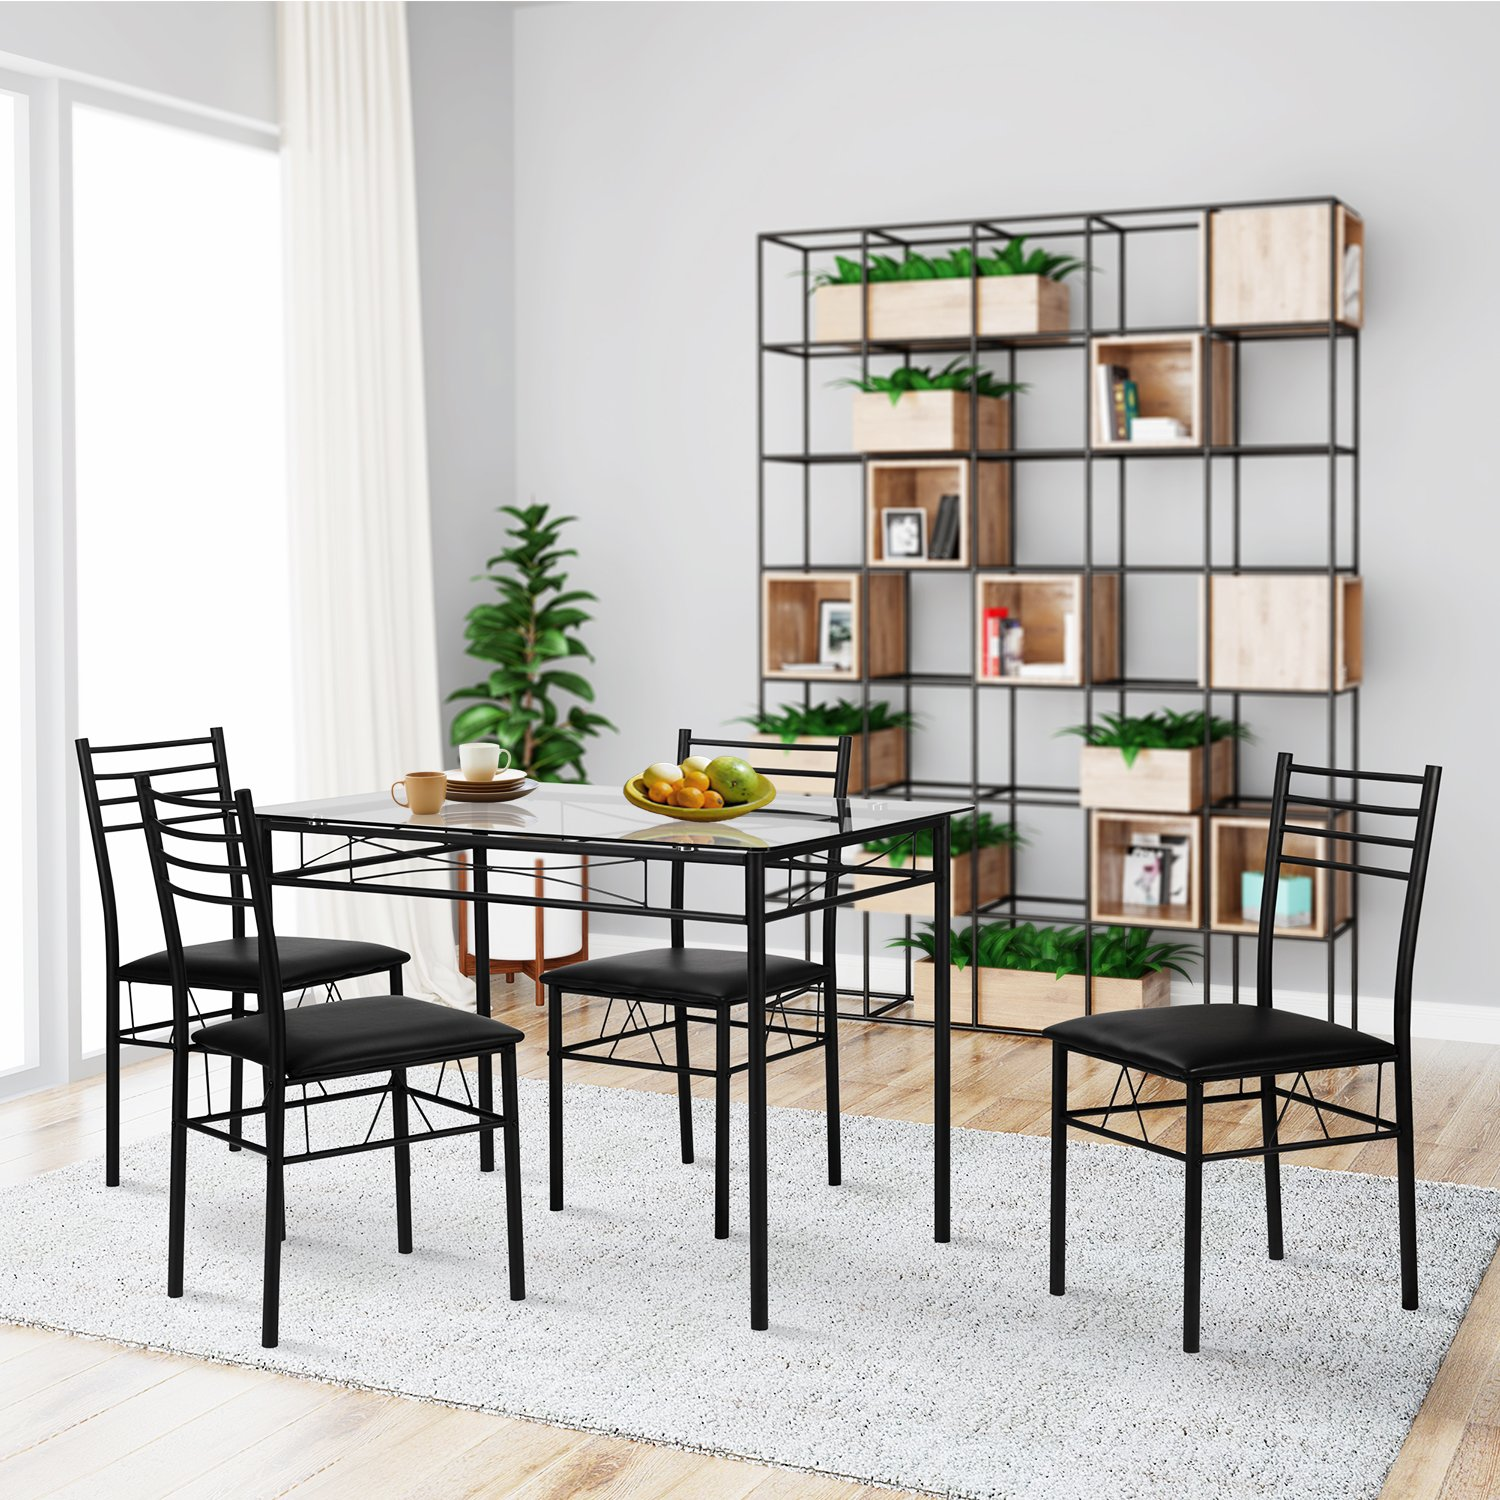 Amazon VECELO Dining Table with 4 Chairs Black Kitchen & Dining